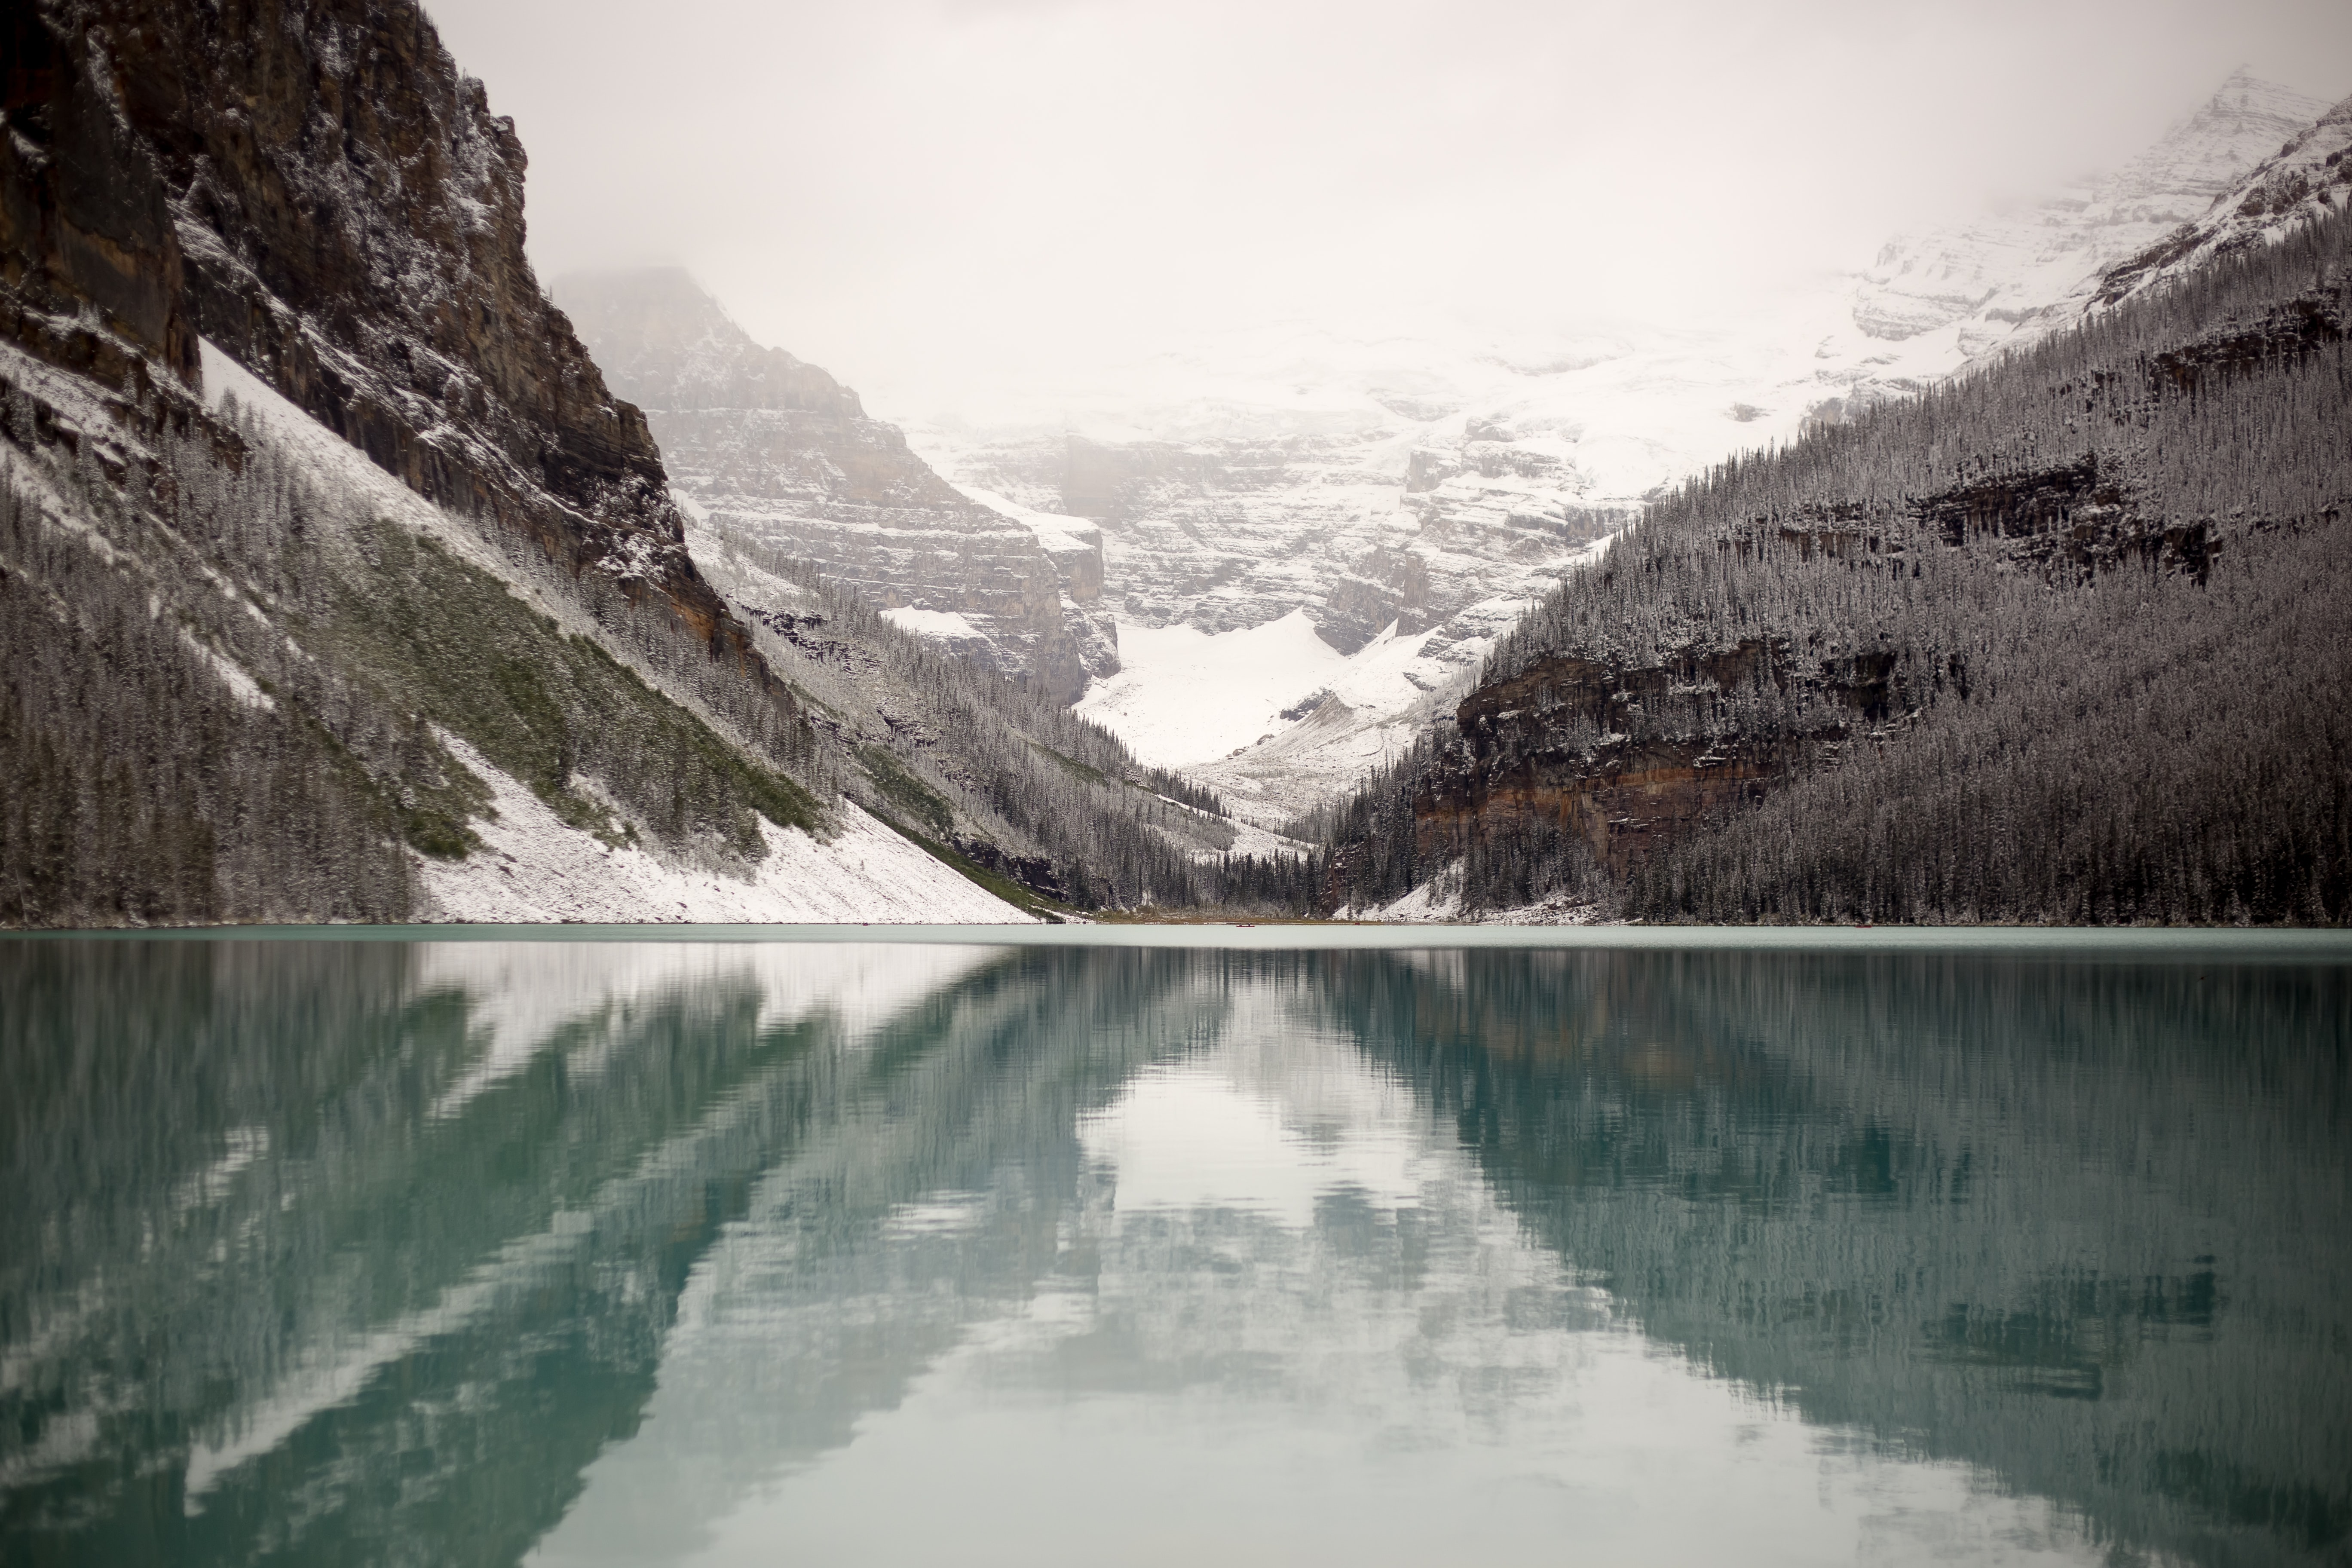 body of water near mountain covered by snow at daytime